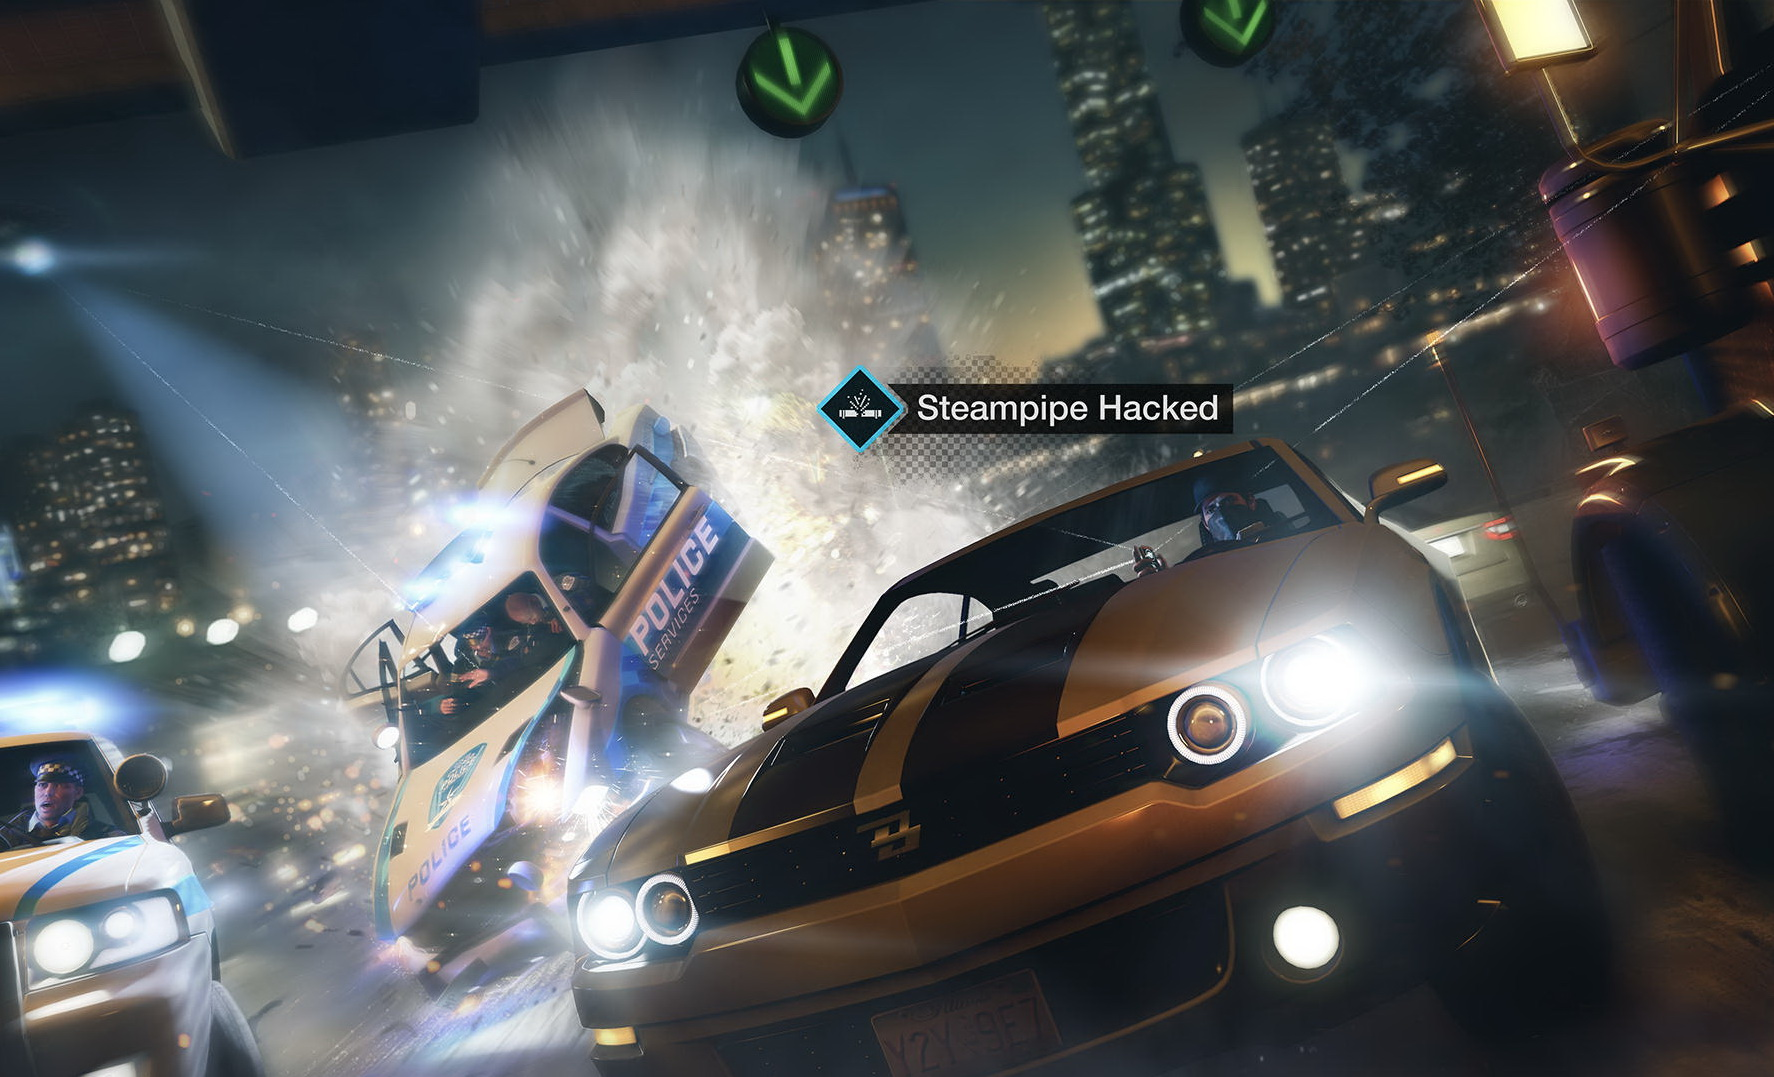 Watch_Dogs_image_319878_full-crop